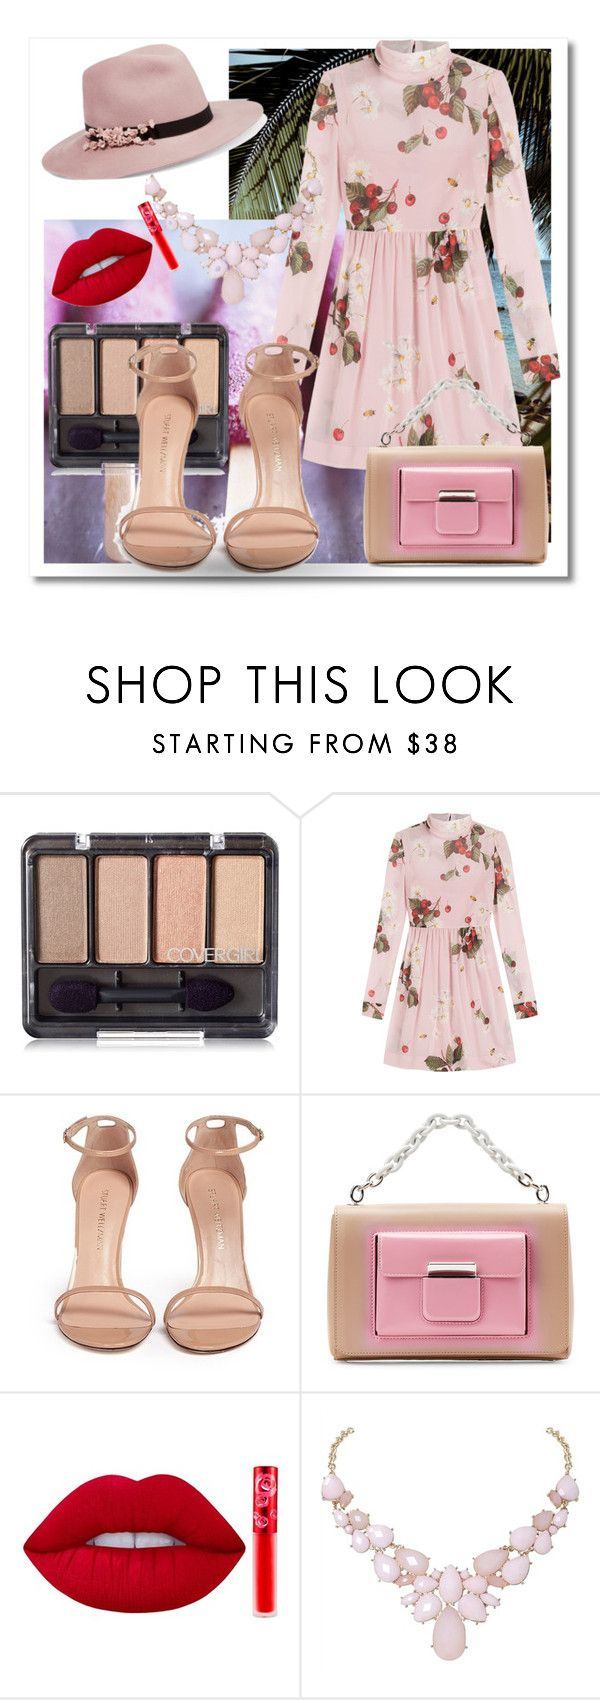 """Senza titolo #34"" by aryluny ❤ liked on Polyvore featuring RED Valentino, Stuart Weitzman, Balenciaga, Lime Crime, Humble Chic and Eugenia Kim"